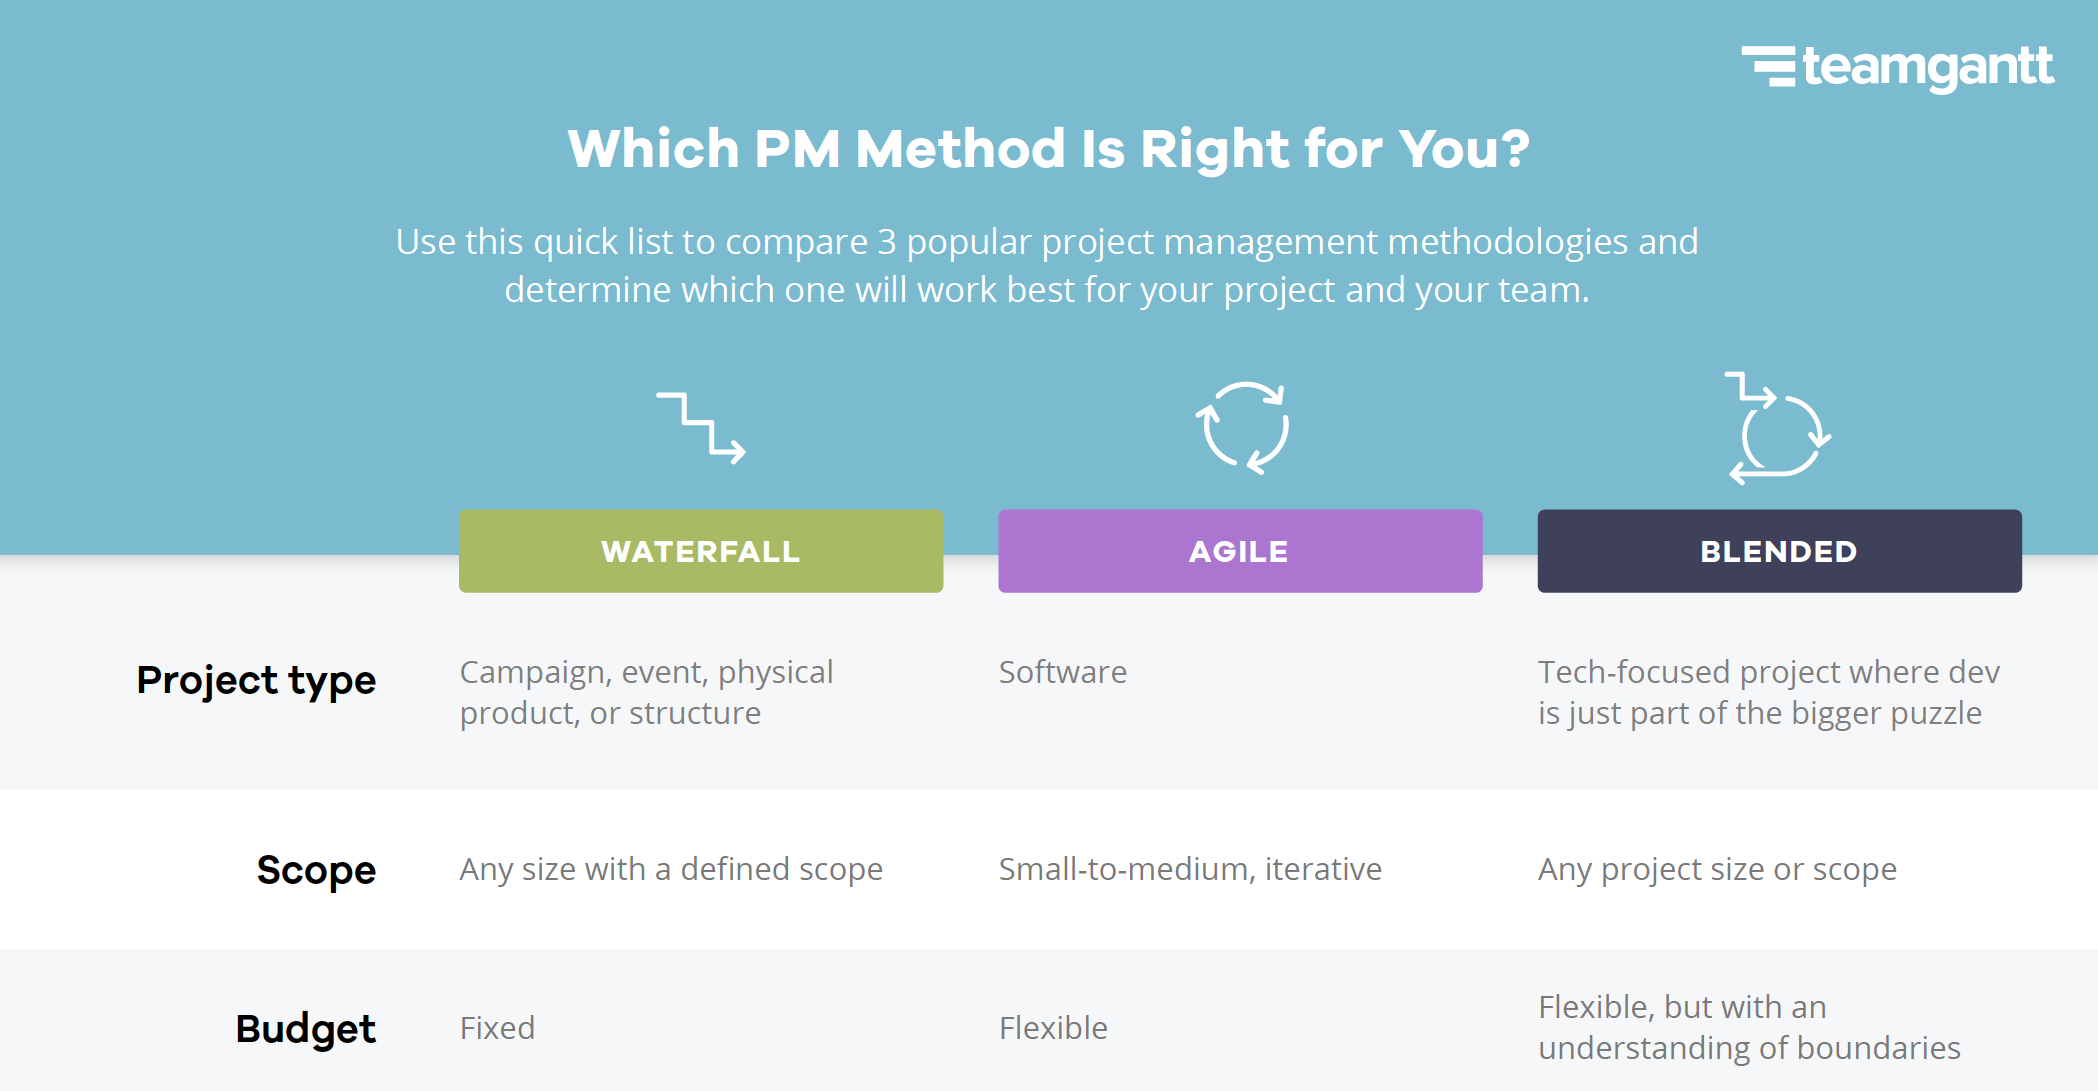 waterfall project management methodology example